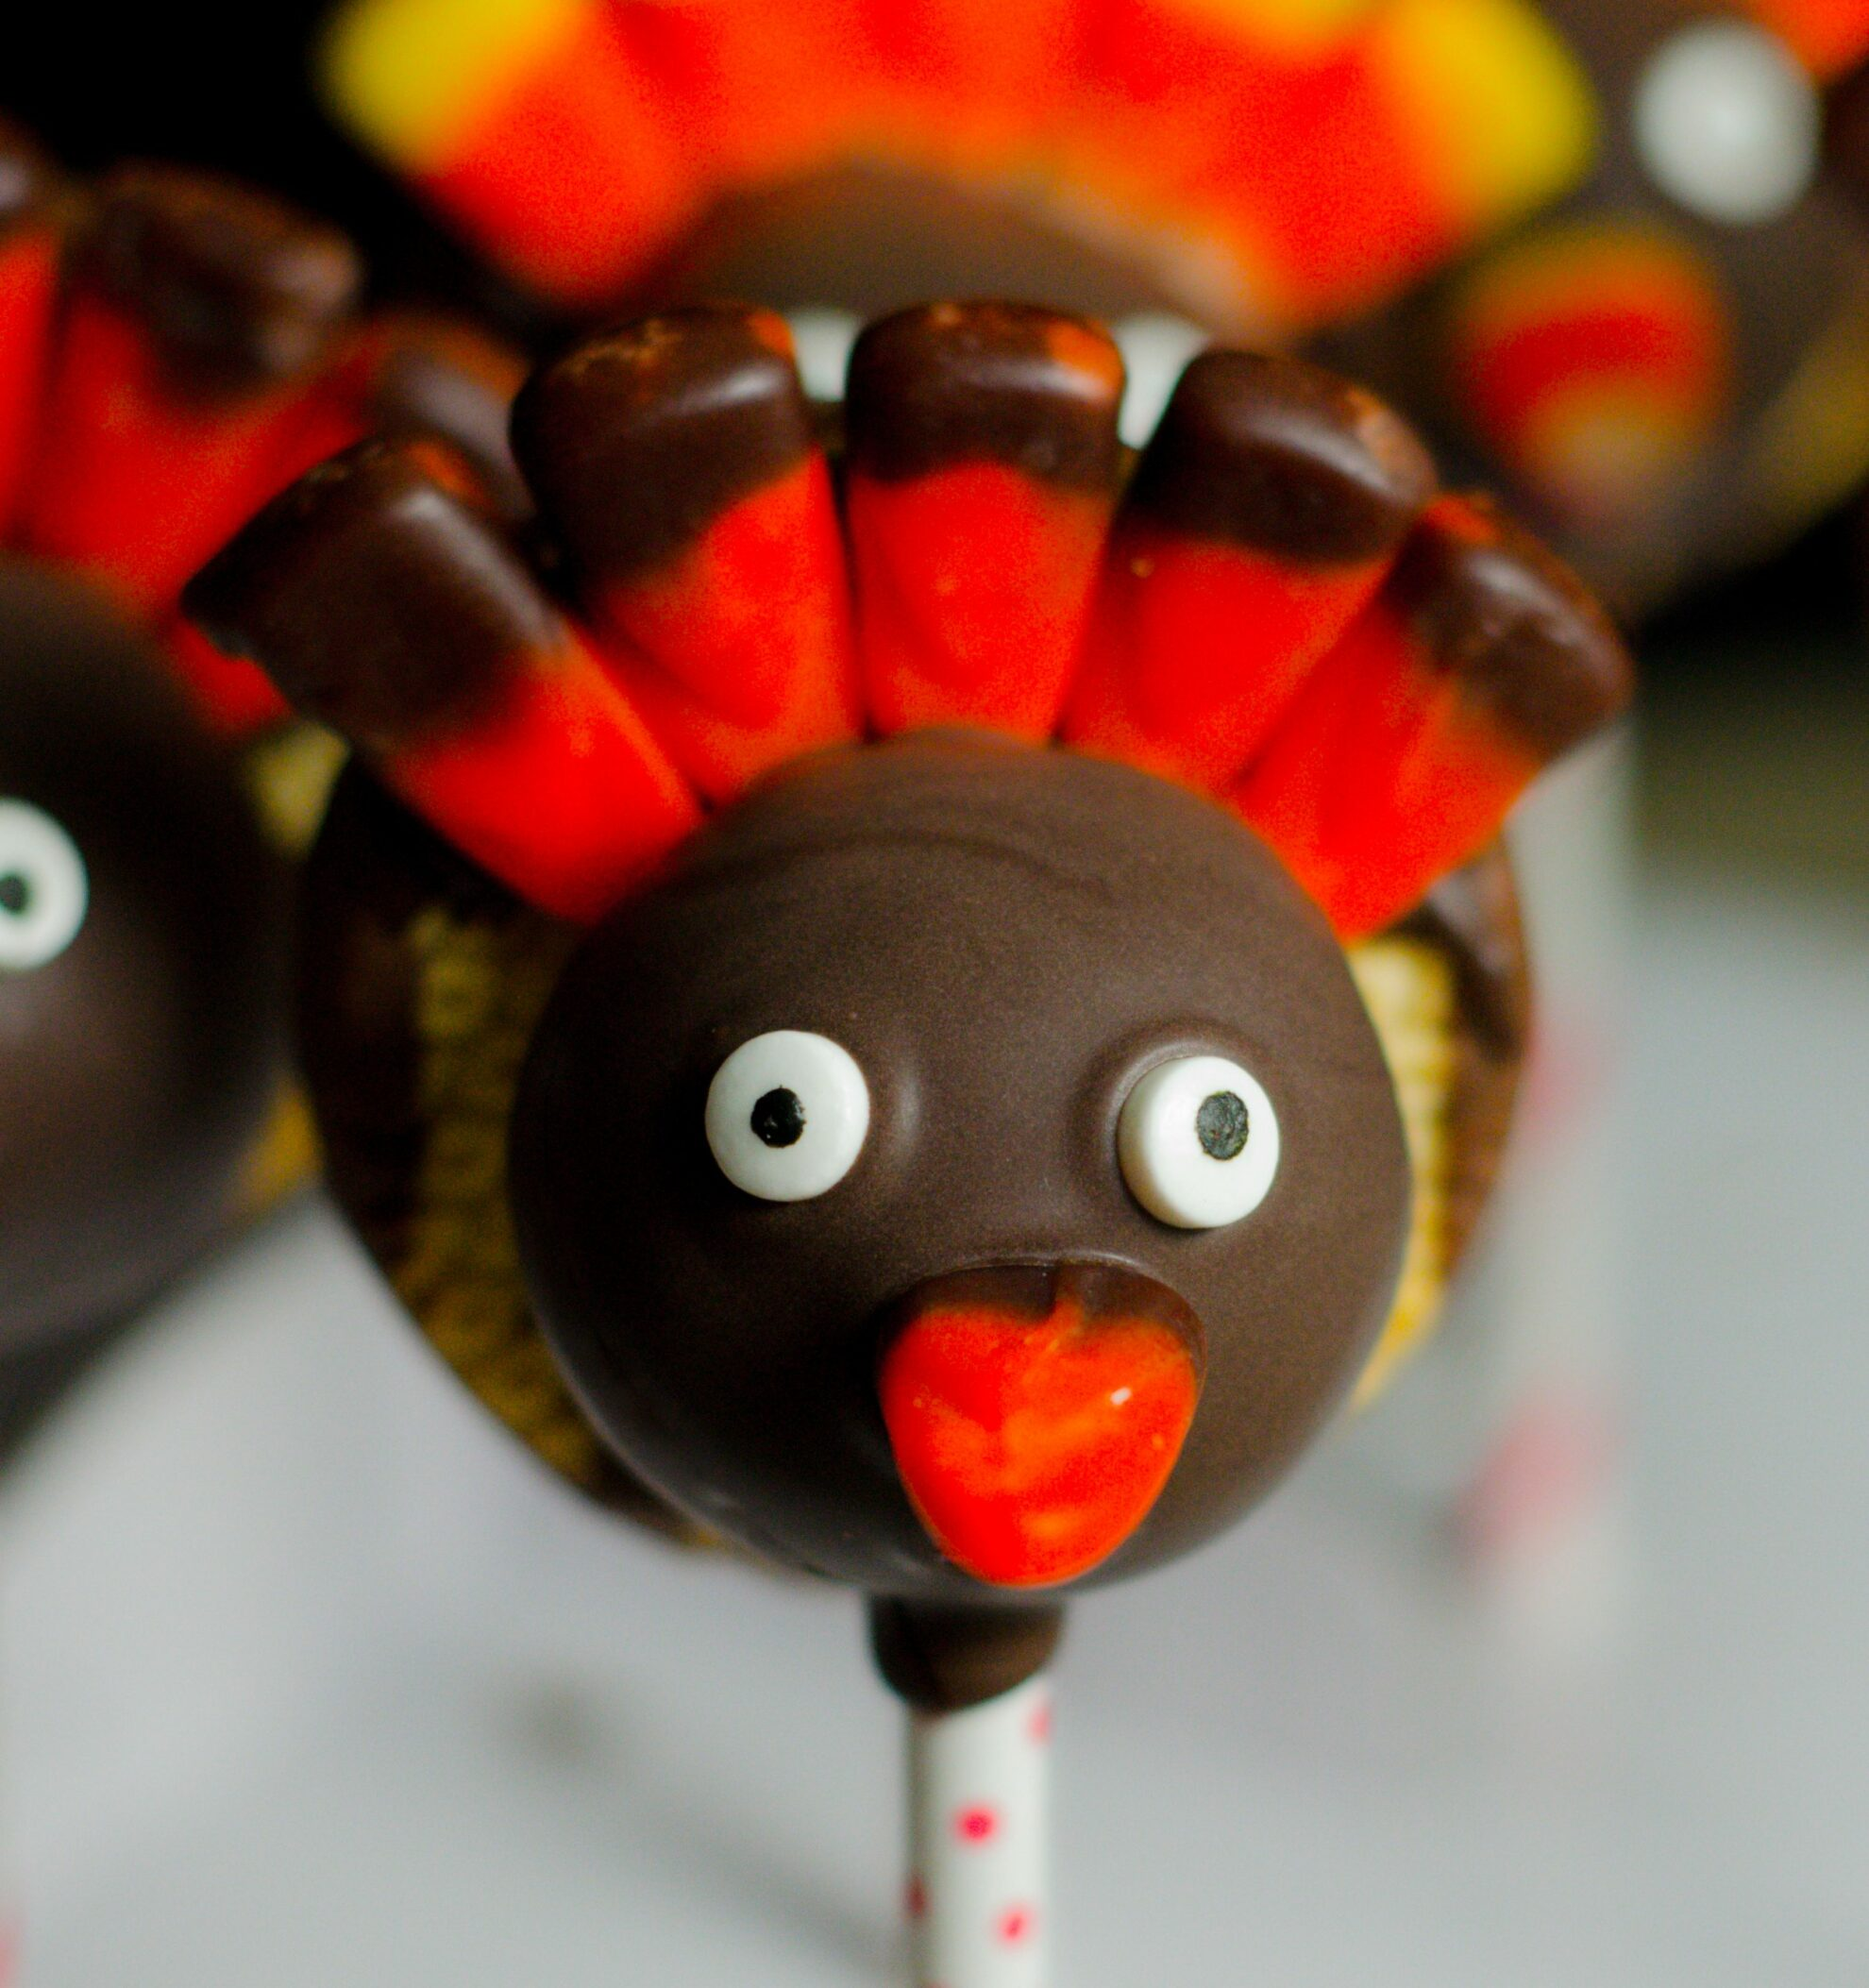 Thanksgiving Turkey Cake Pops: carrot cake and cinnamon cream cheese frosting. Delicious, impressive turkeys: step-by-step instructions, pictures, and printable recipe.